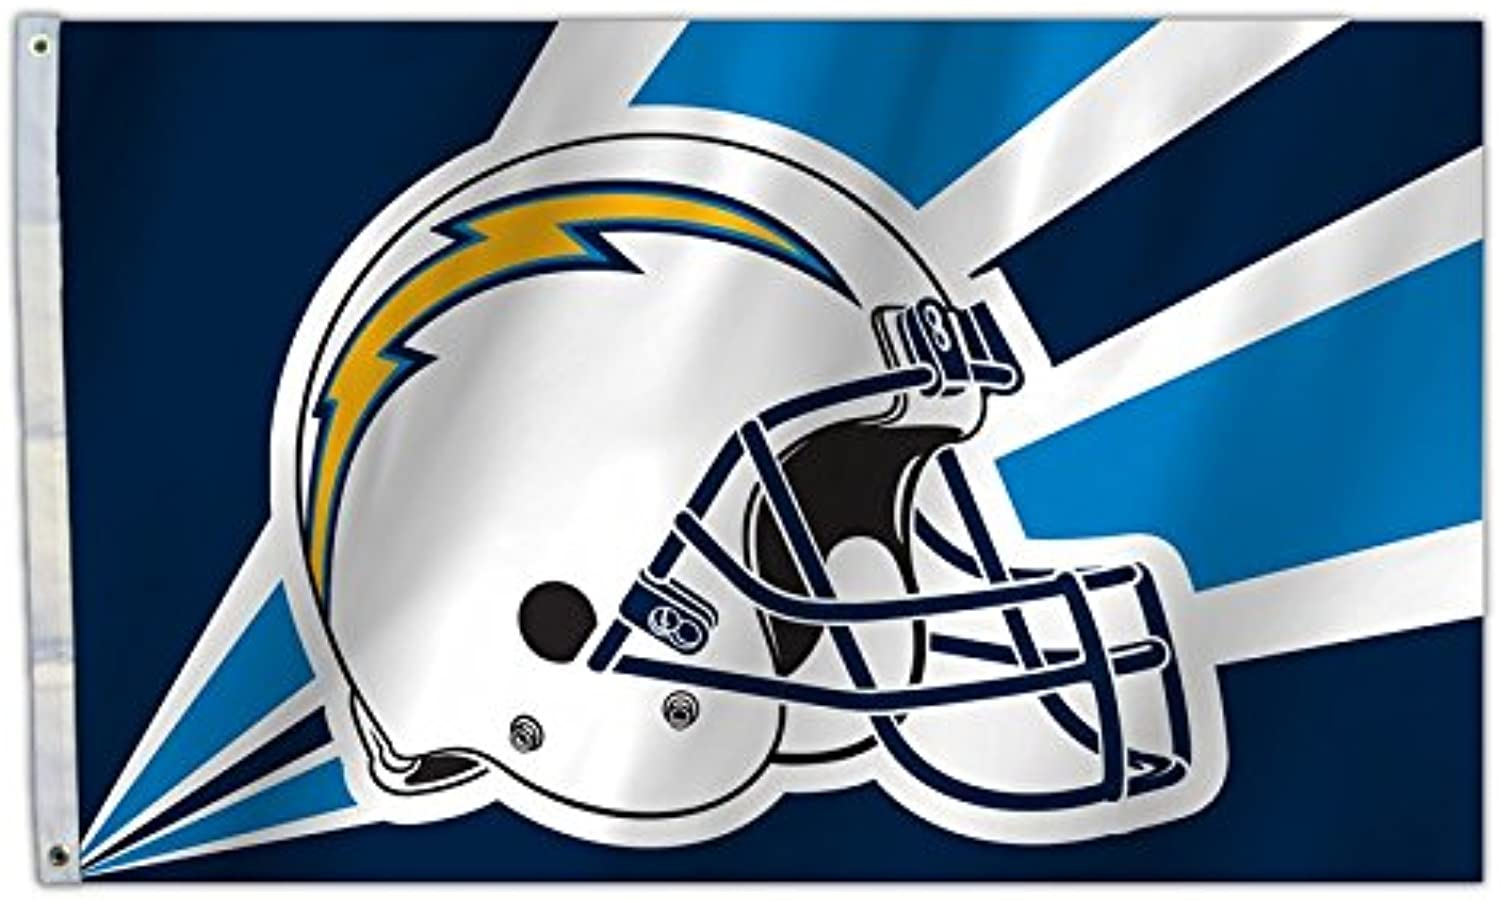 Buck Knives NFL Los Angeles Chargers 3 Ft. X 5 Ft. Flag with Grommetts, One Size, Multicolor